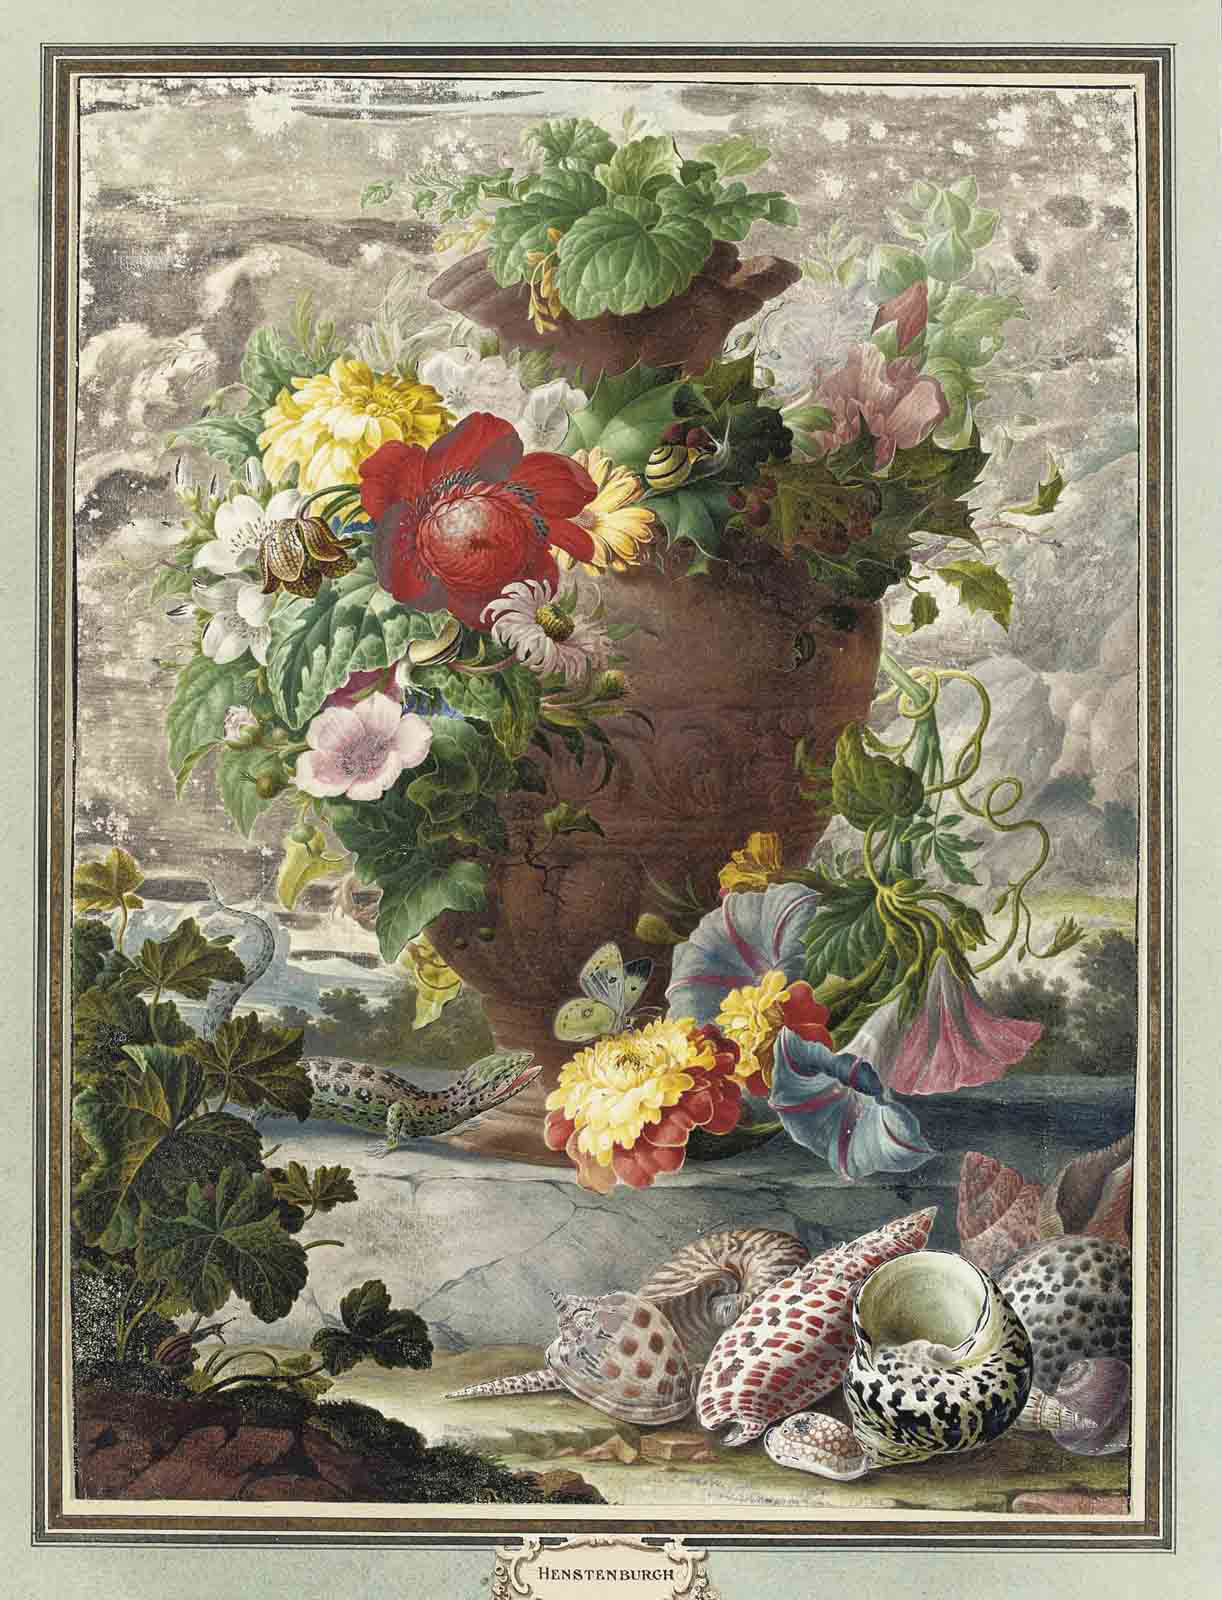 A spray of chrysanthemums, a fritillary, pink hollyhock, morning glory and a red dahlia in an urn, with various shells and a lizard in the foreground